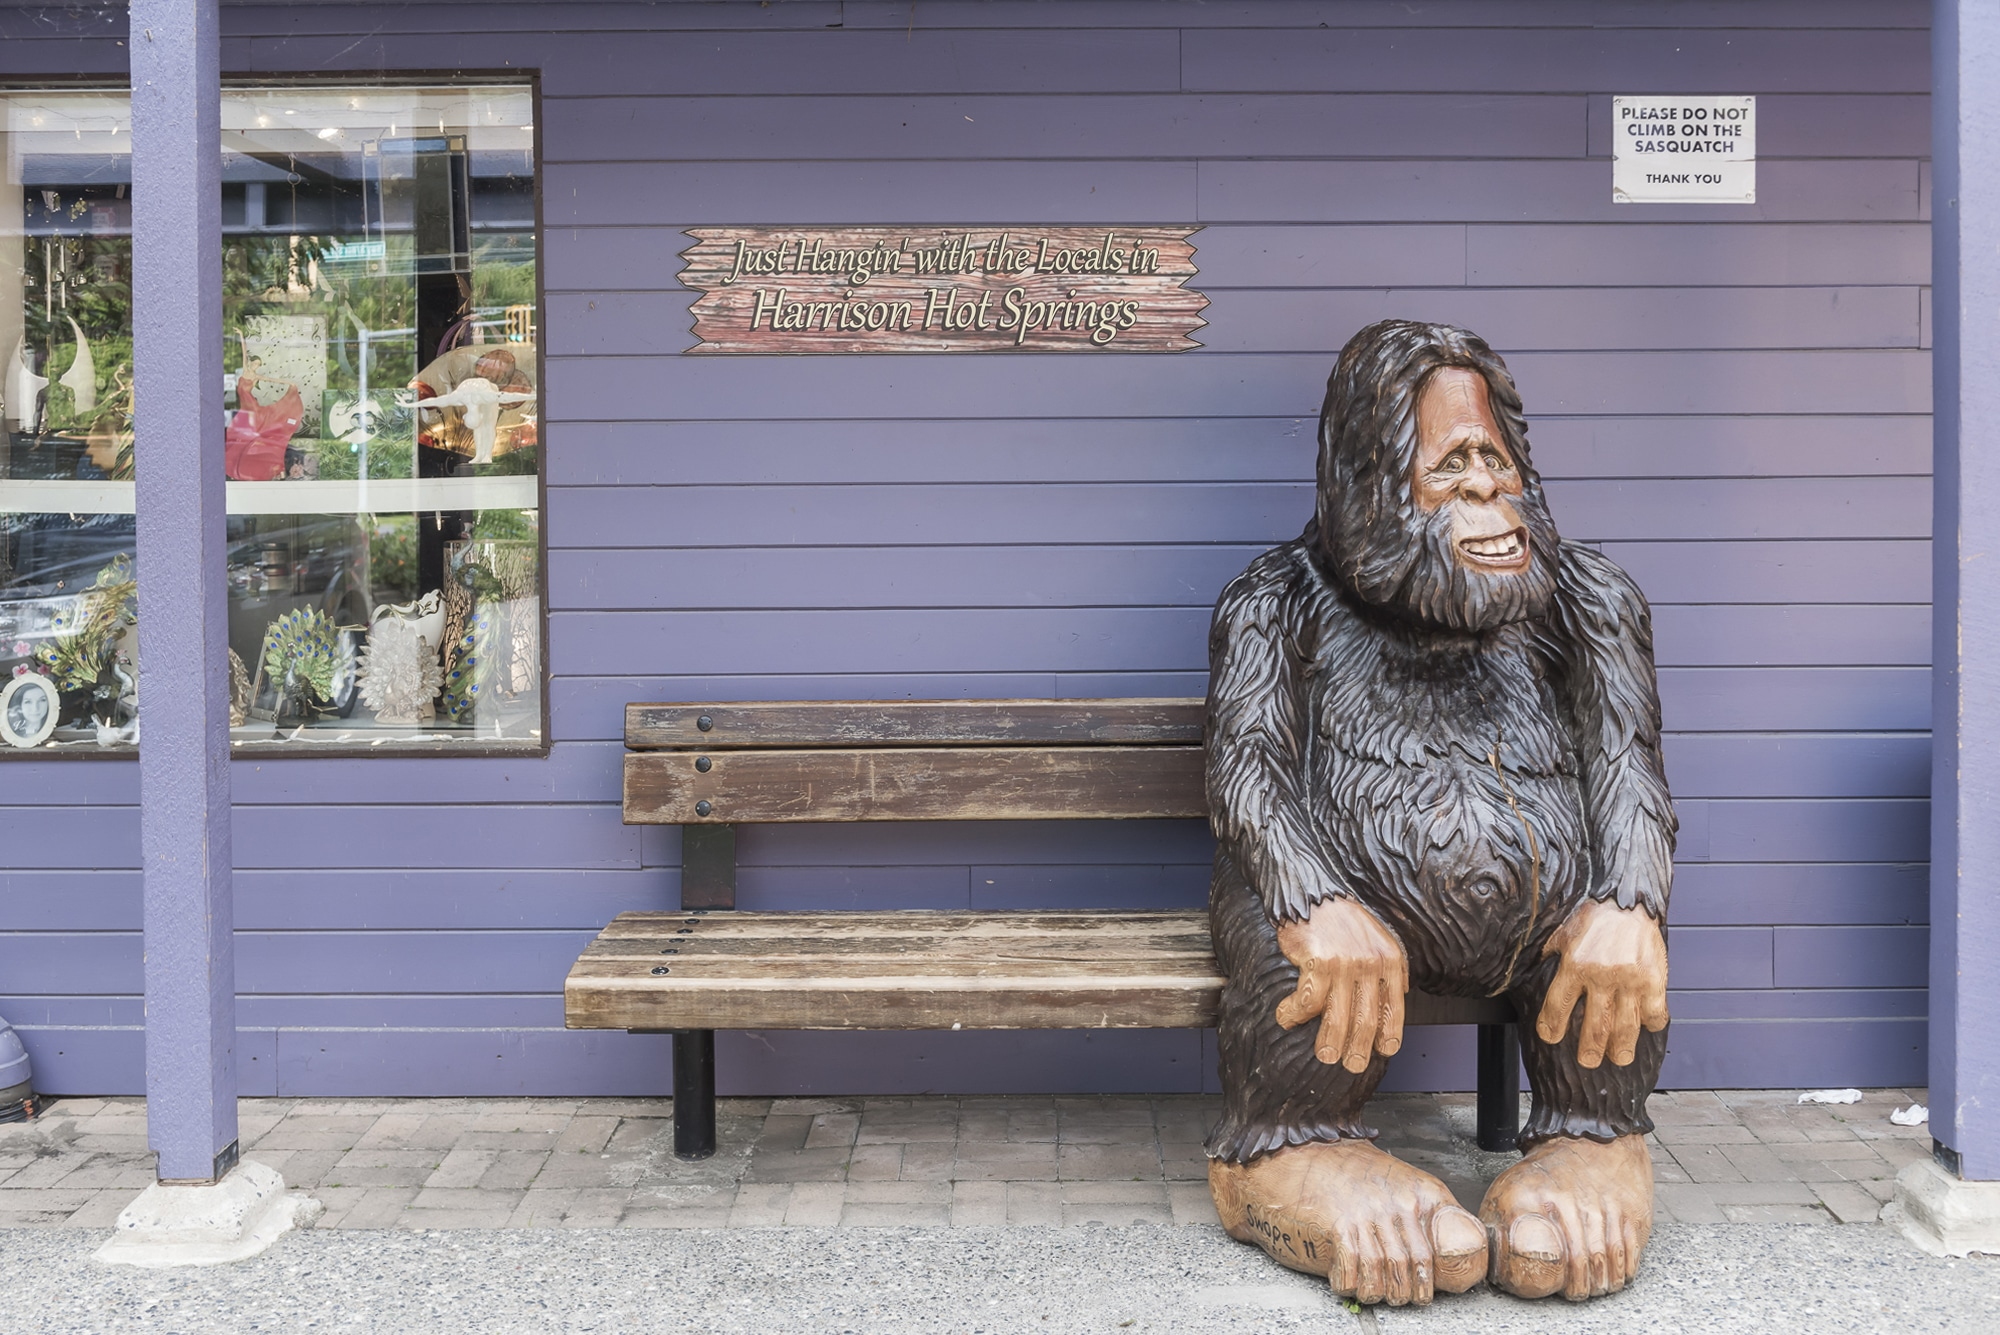 Harrison Hot Springs Sasquatch